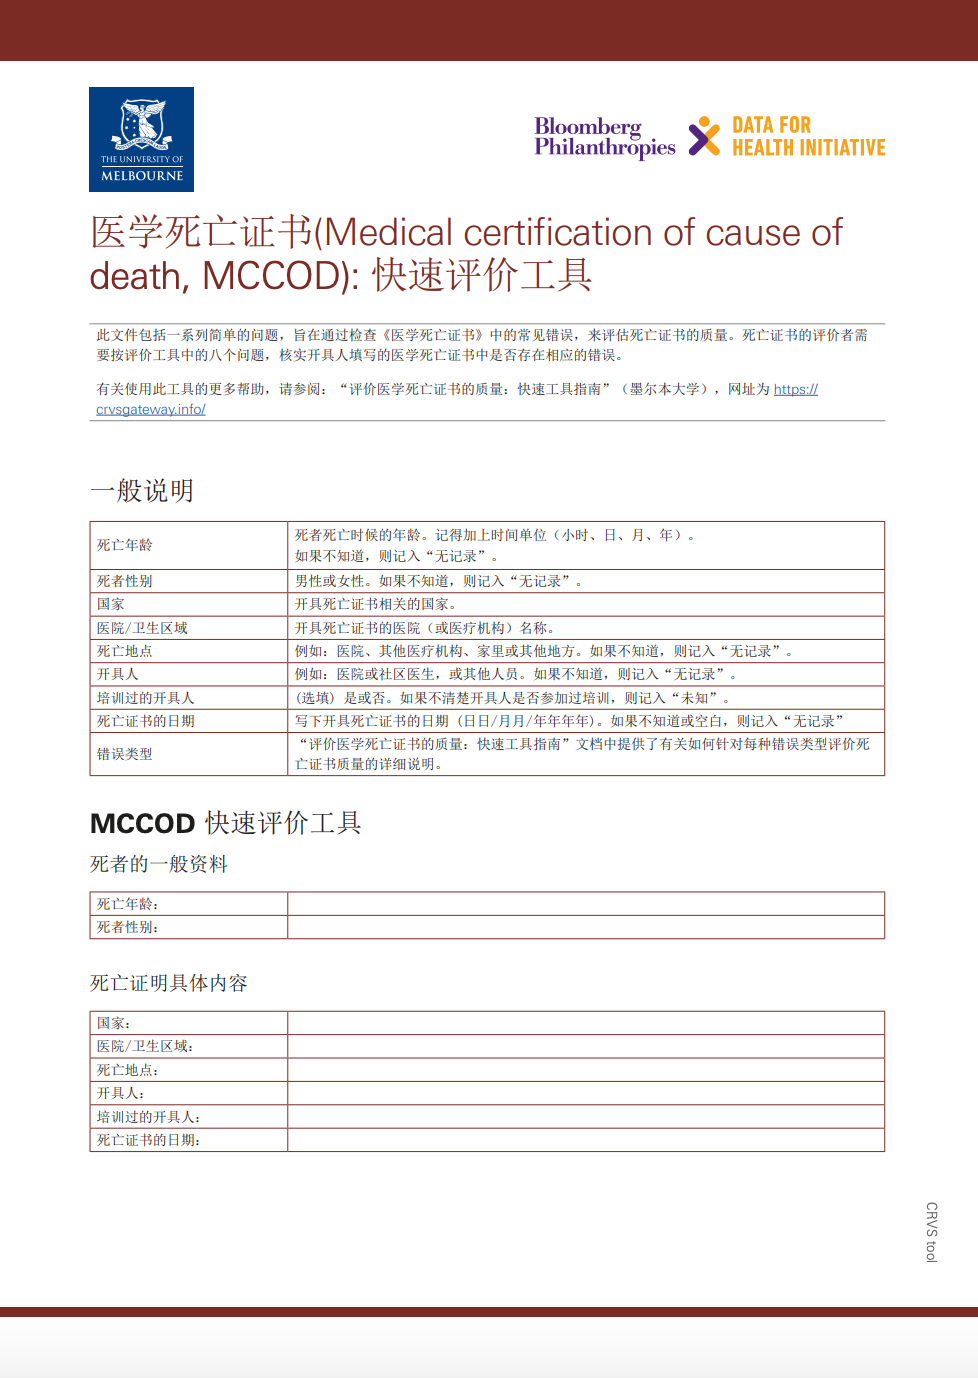 Medical certification of cause of death (MCCOD): Rapid assessment tool (Chinese version) thumbnail